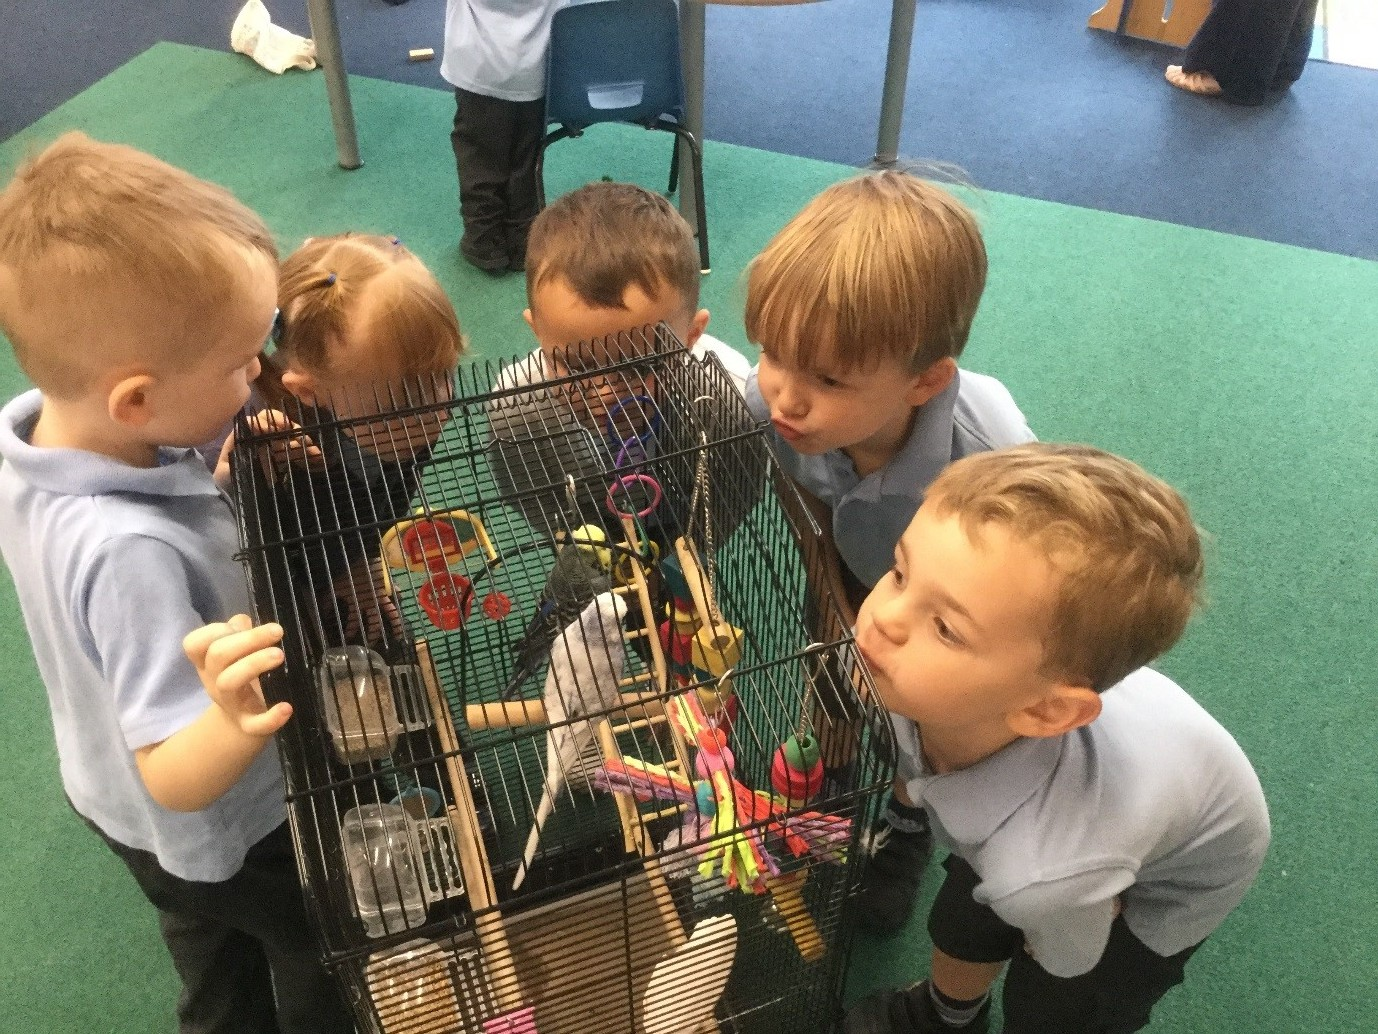 We started this week by welcoming some feathered friends into Nursery. Mrs Gaddes' budgies Ricky and Buddy stayed for the whole week which gave the children the chance to oberve them really carefully. -